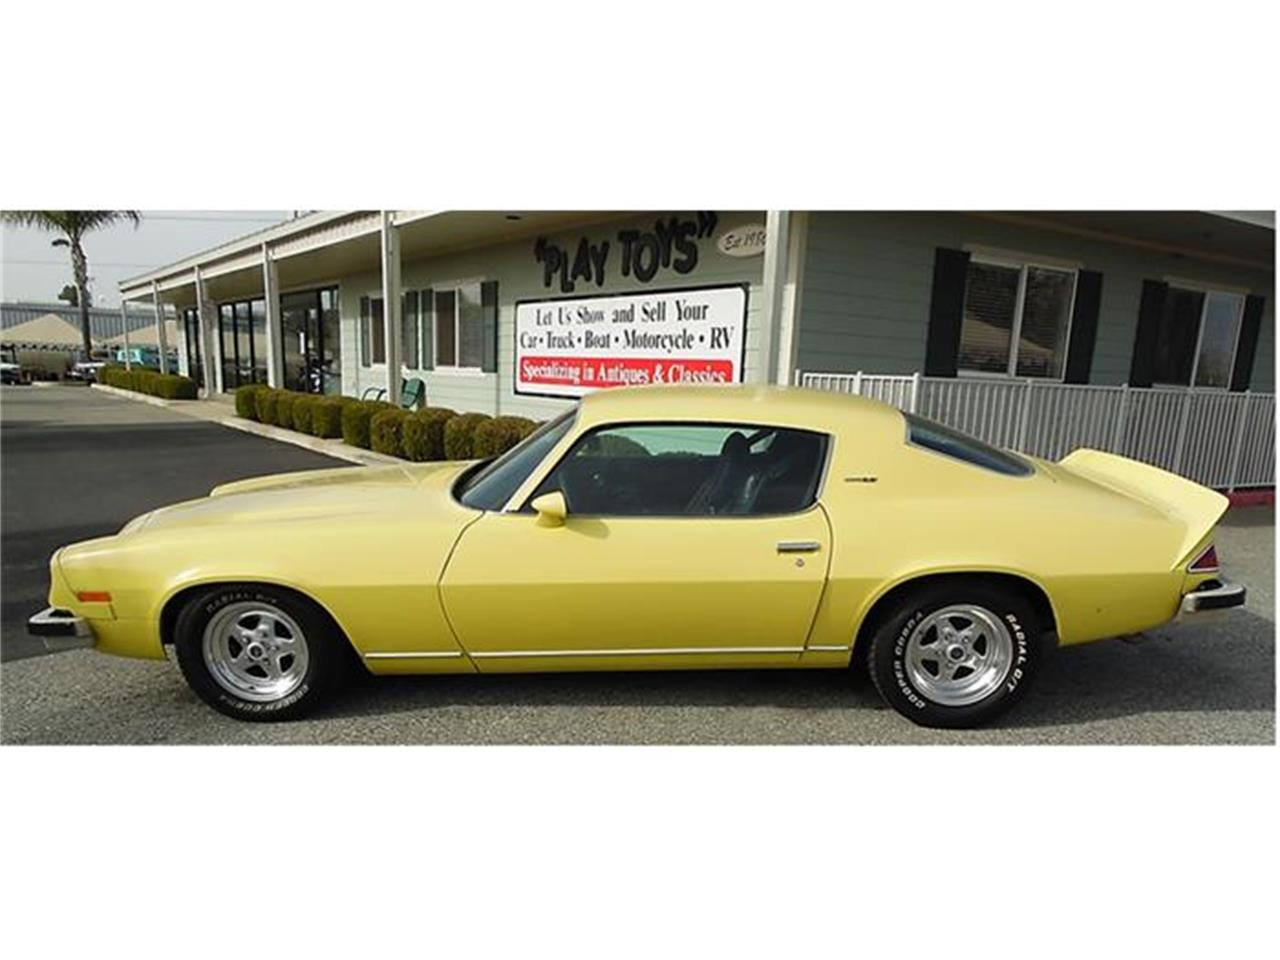 Large Picture of '74 Chevrolet Camaro located in Redlands California - $9,995.00 Offered by Play Toys Classic Cars - GP98